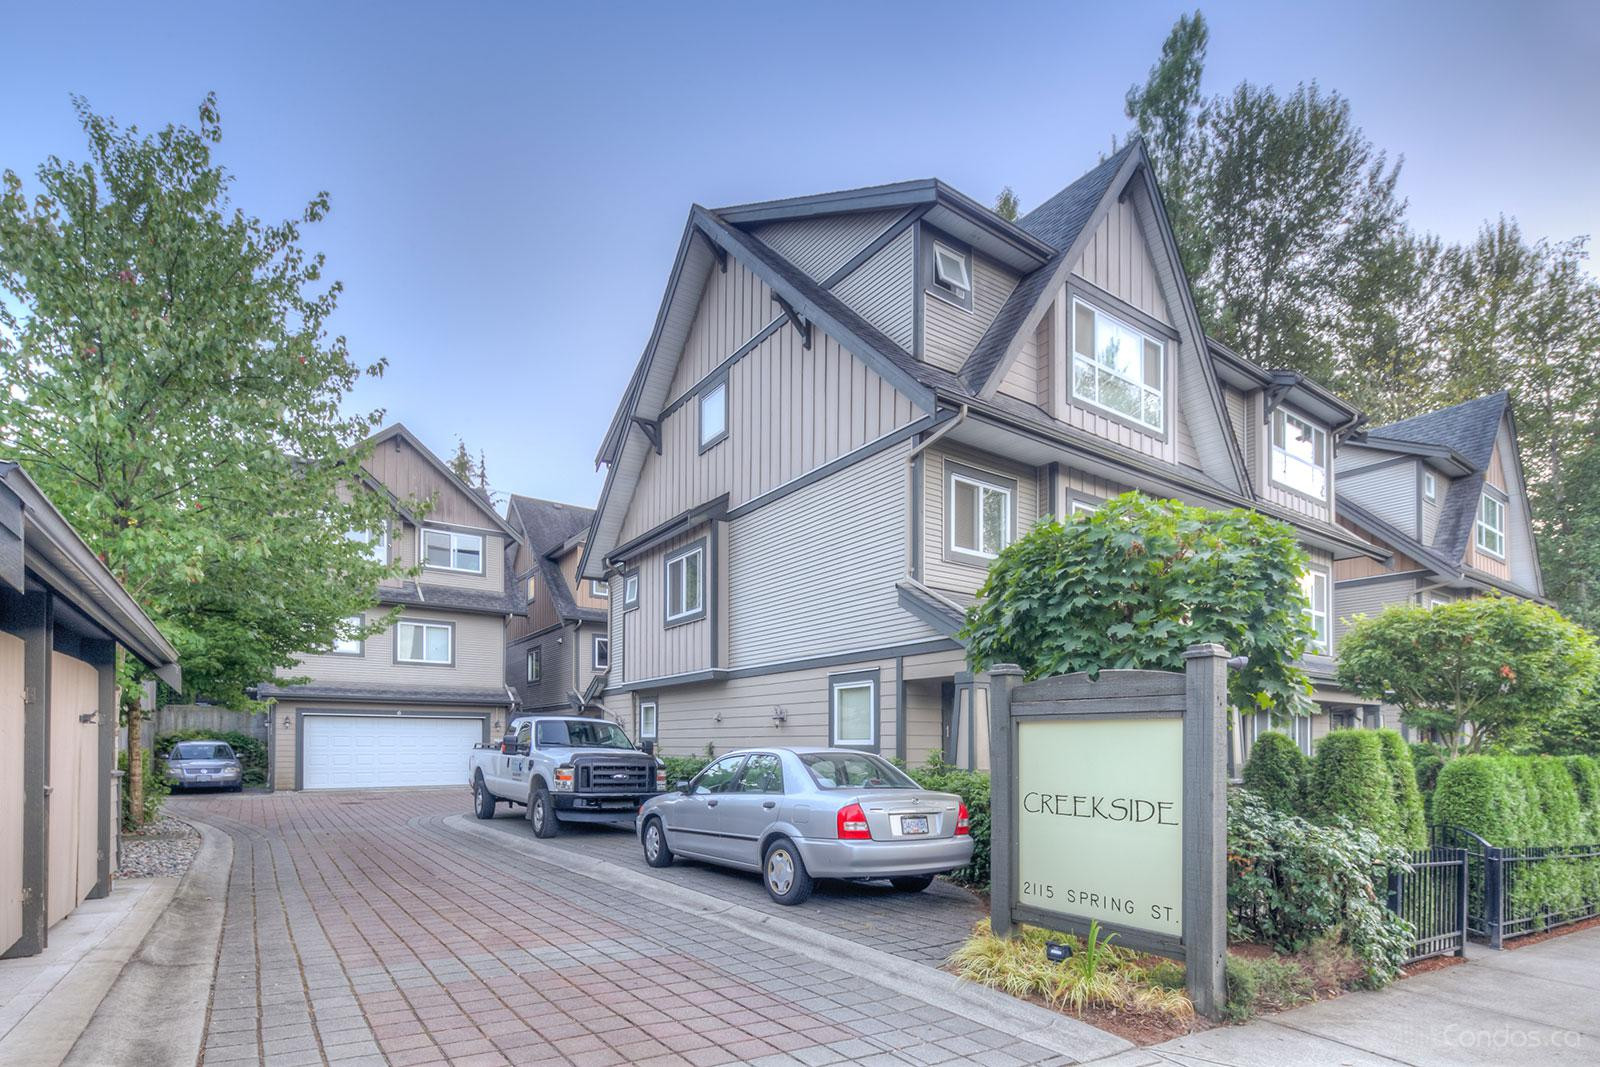 Creekside at 2115 Spring St, Port Moody 0